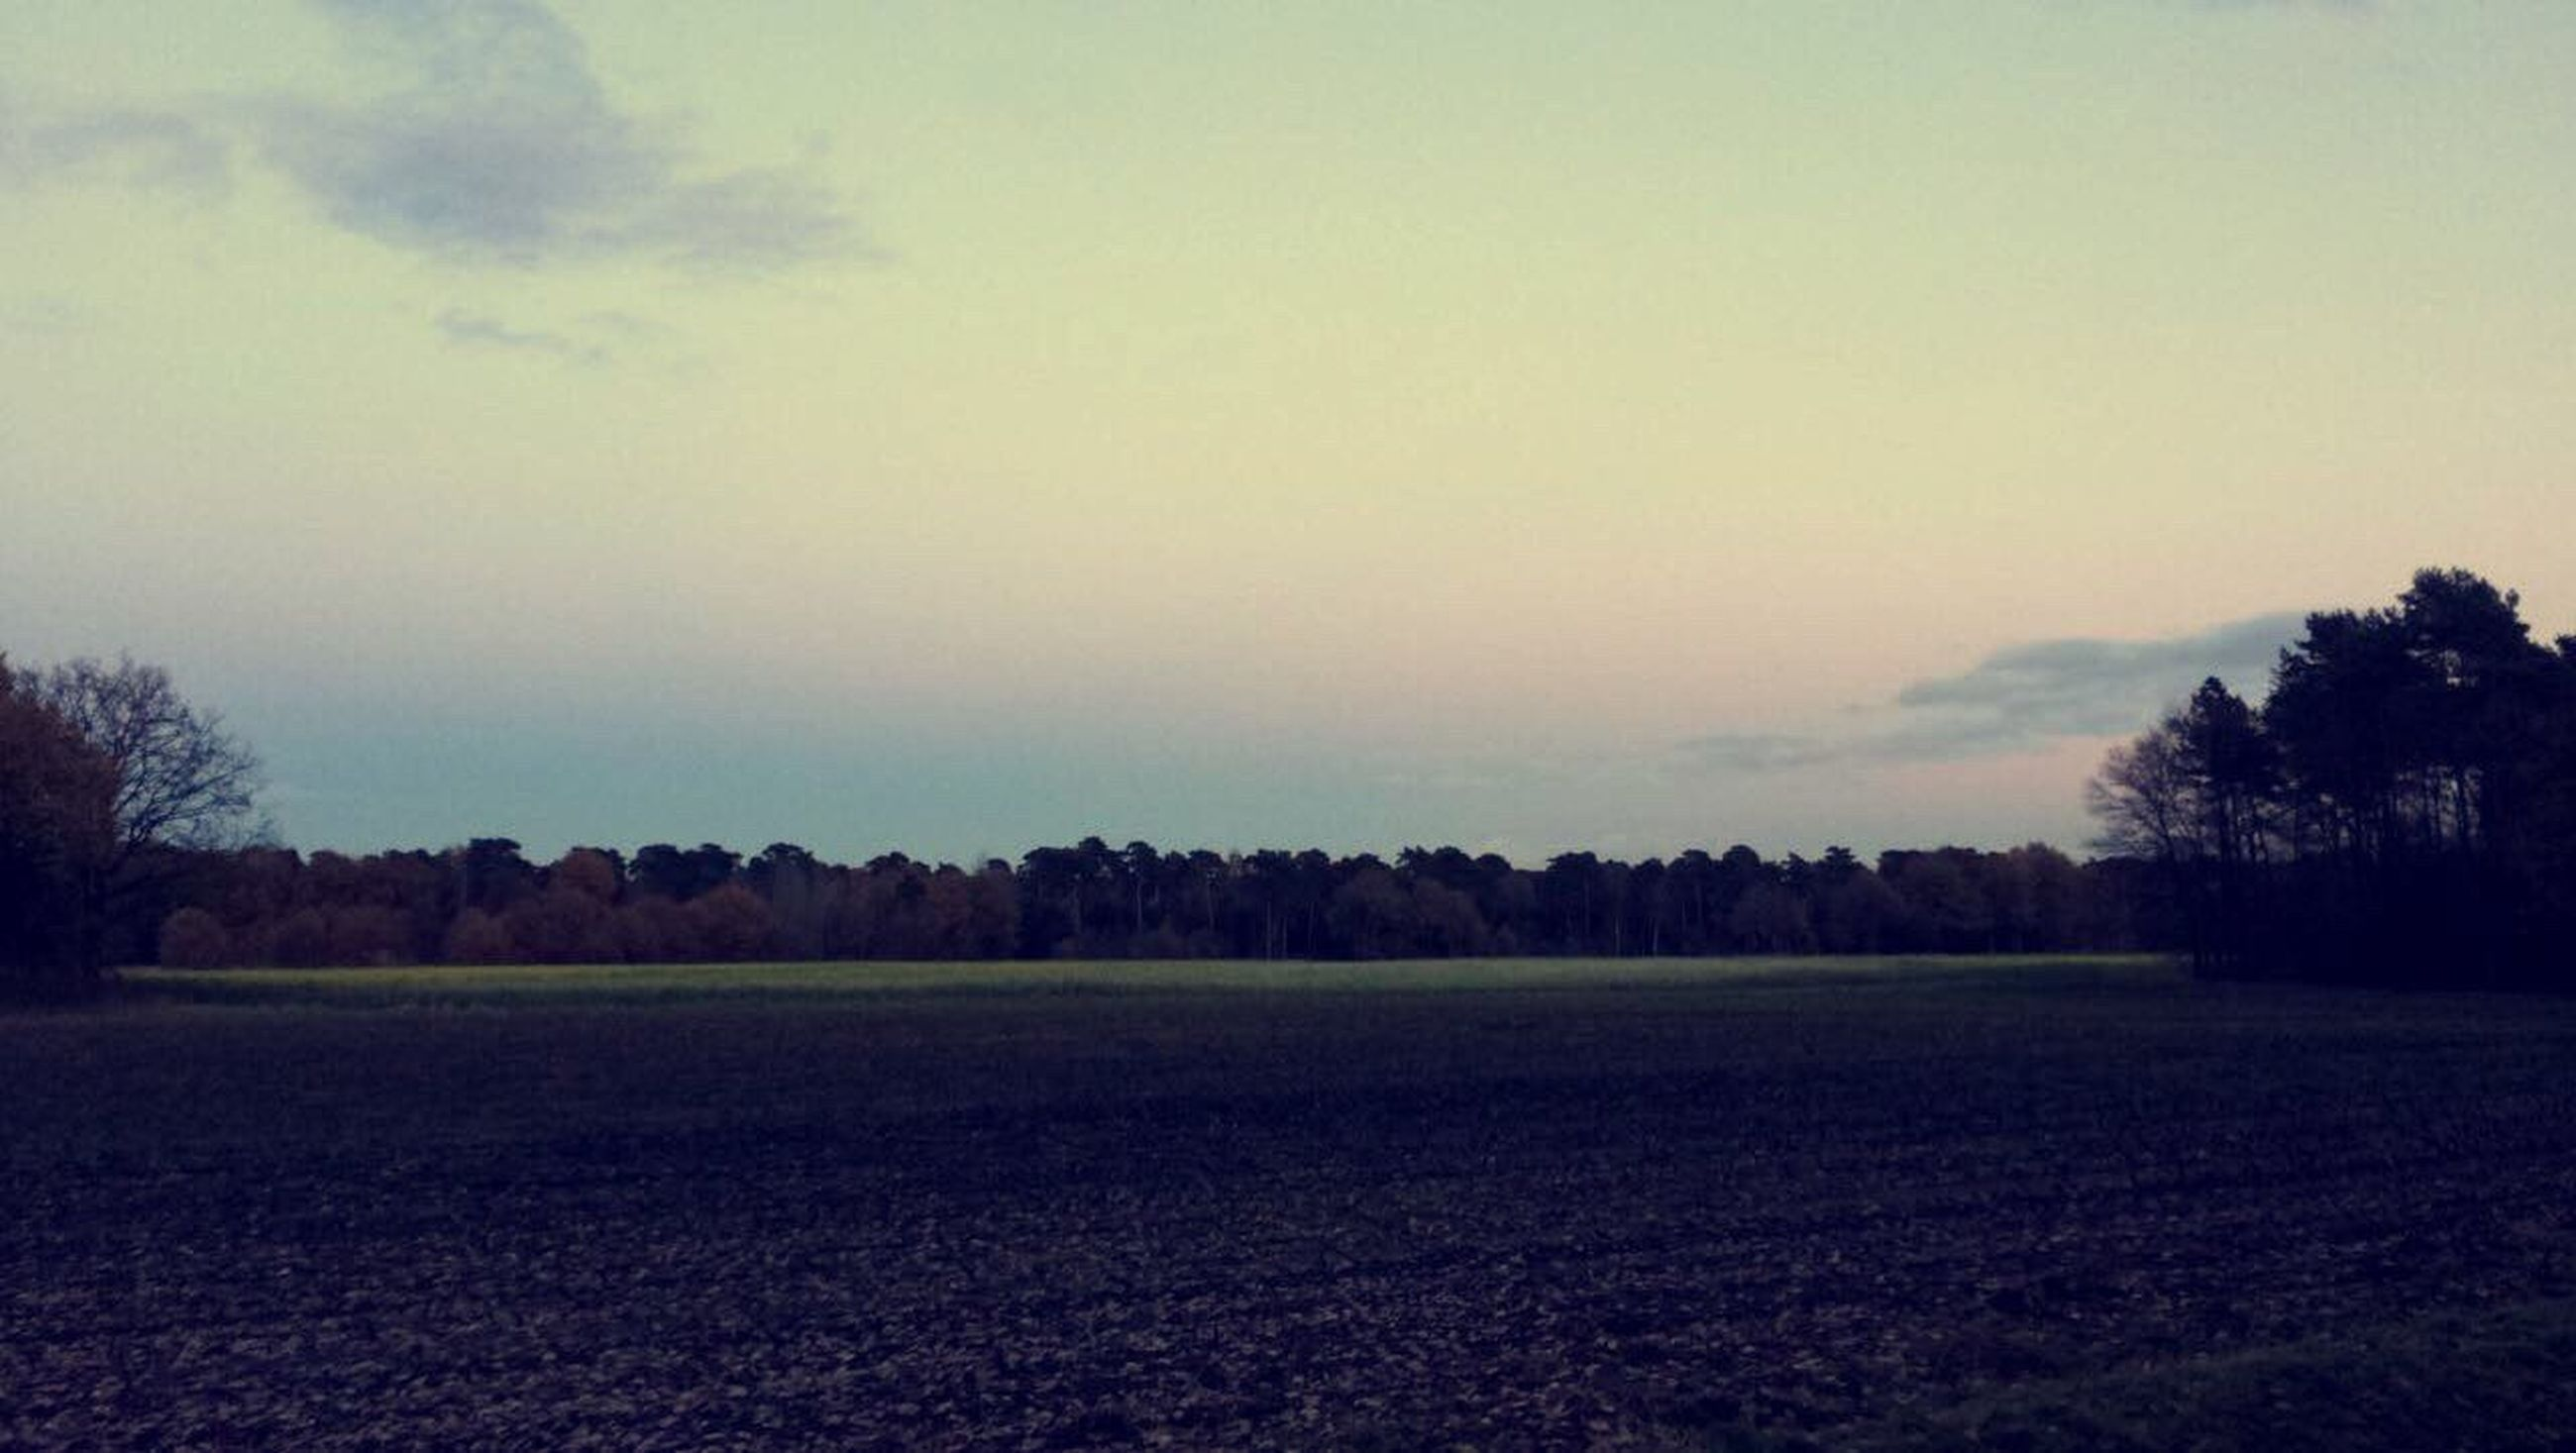 sky, tree, agriculture, landscape, nature, rural scene, tranquility, field, no people, growth, beauty in nature, tranquil scene, outdoors, scenics, day